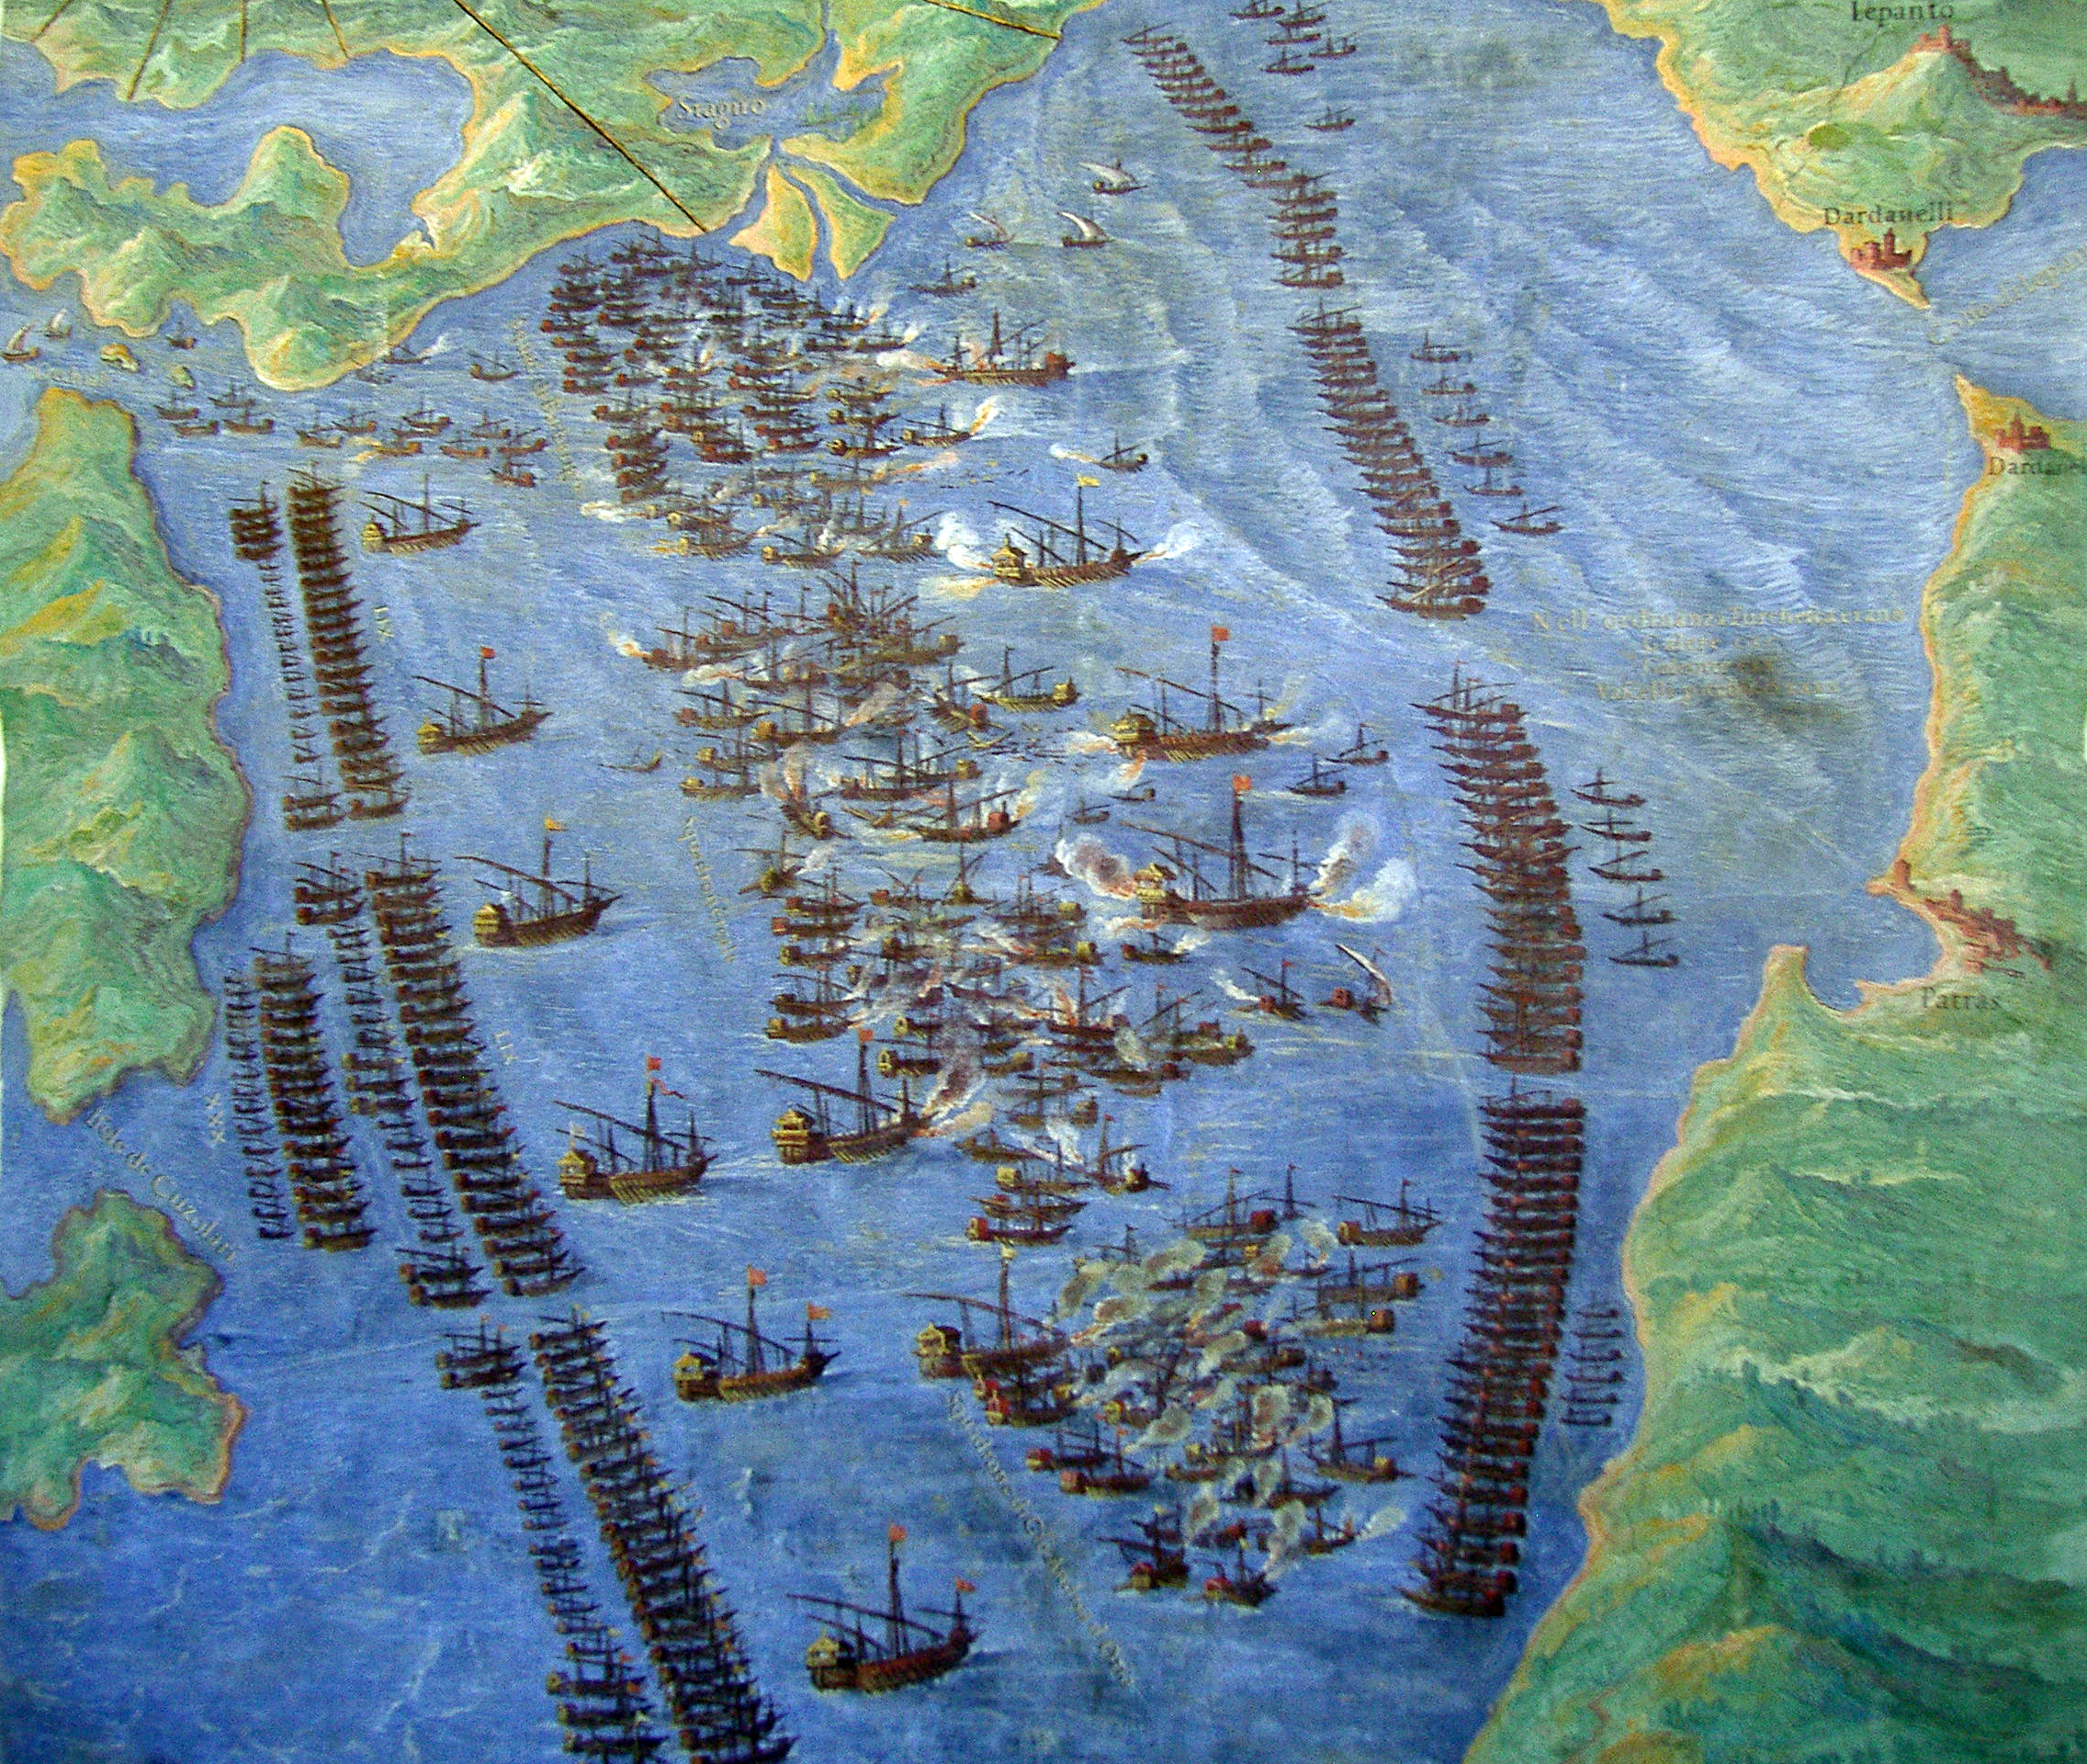 A fresco of the Battle of Lepanto in the Vatican